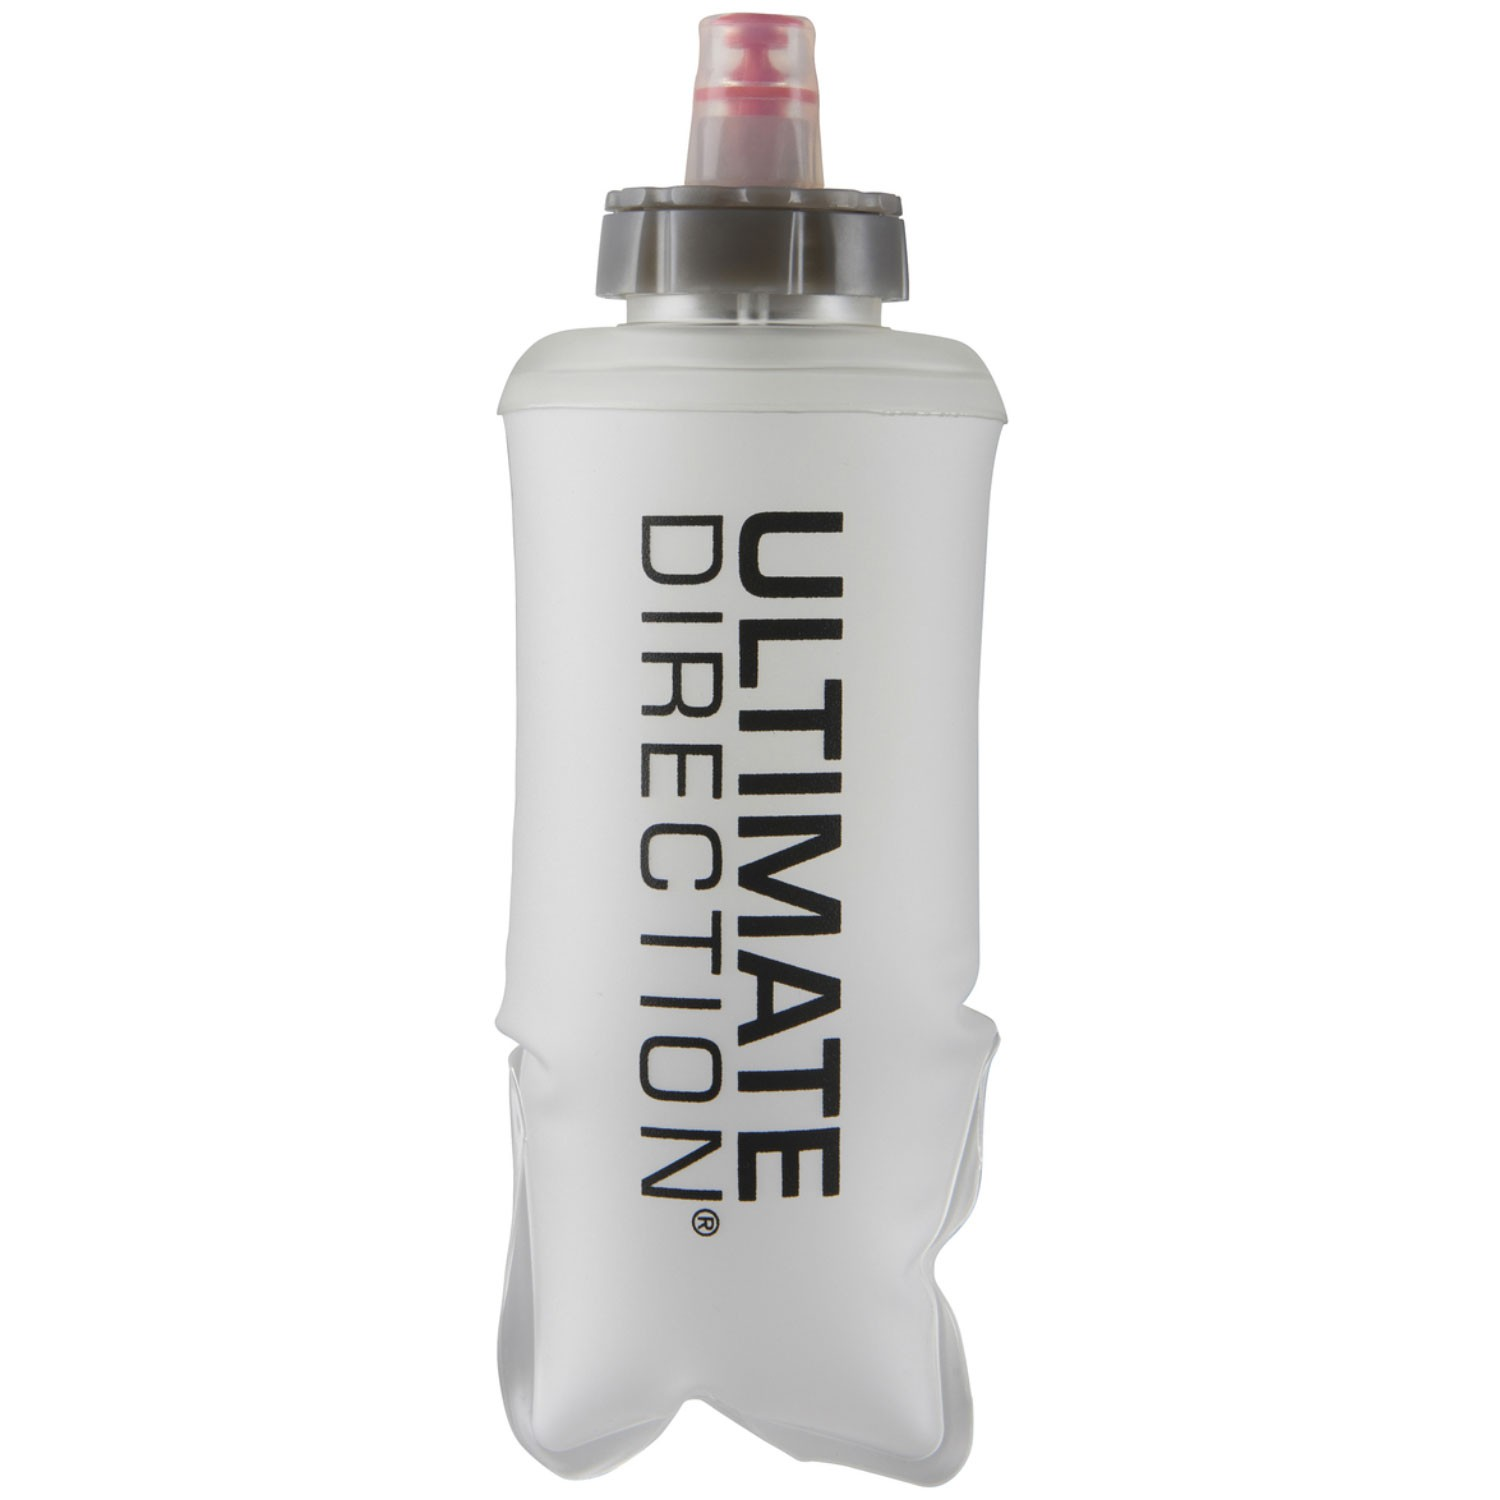 The Ultimate Direction Body Bottle 500